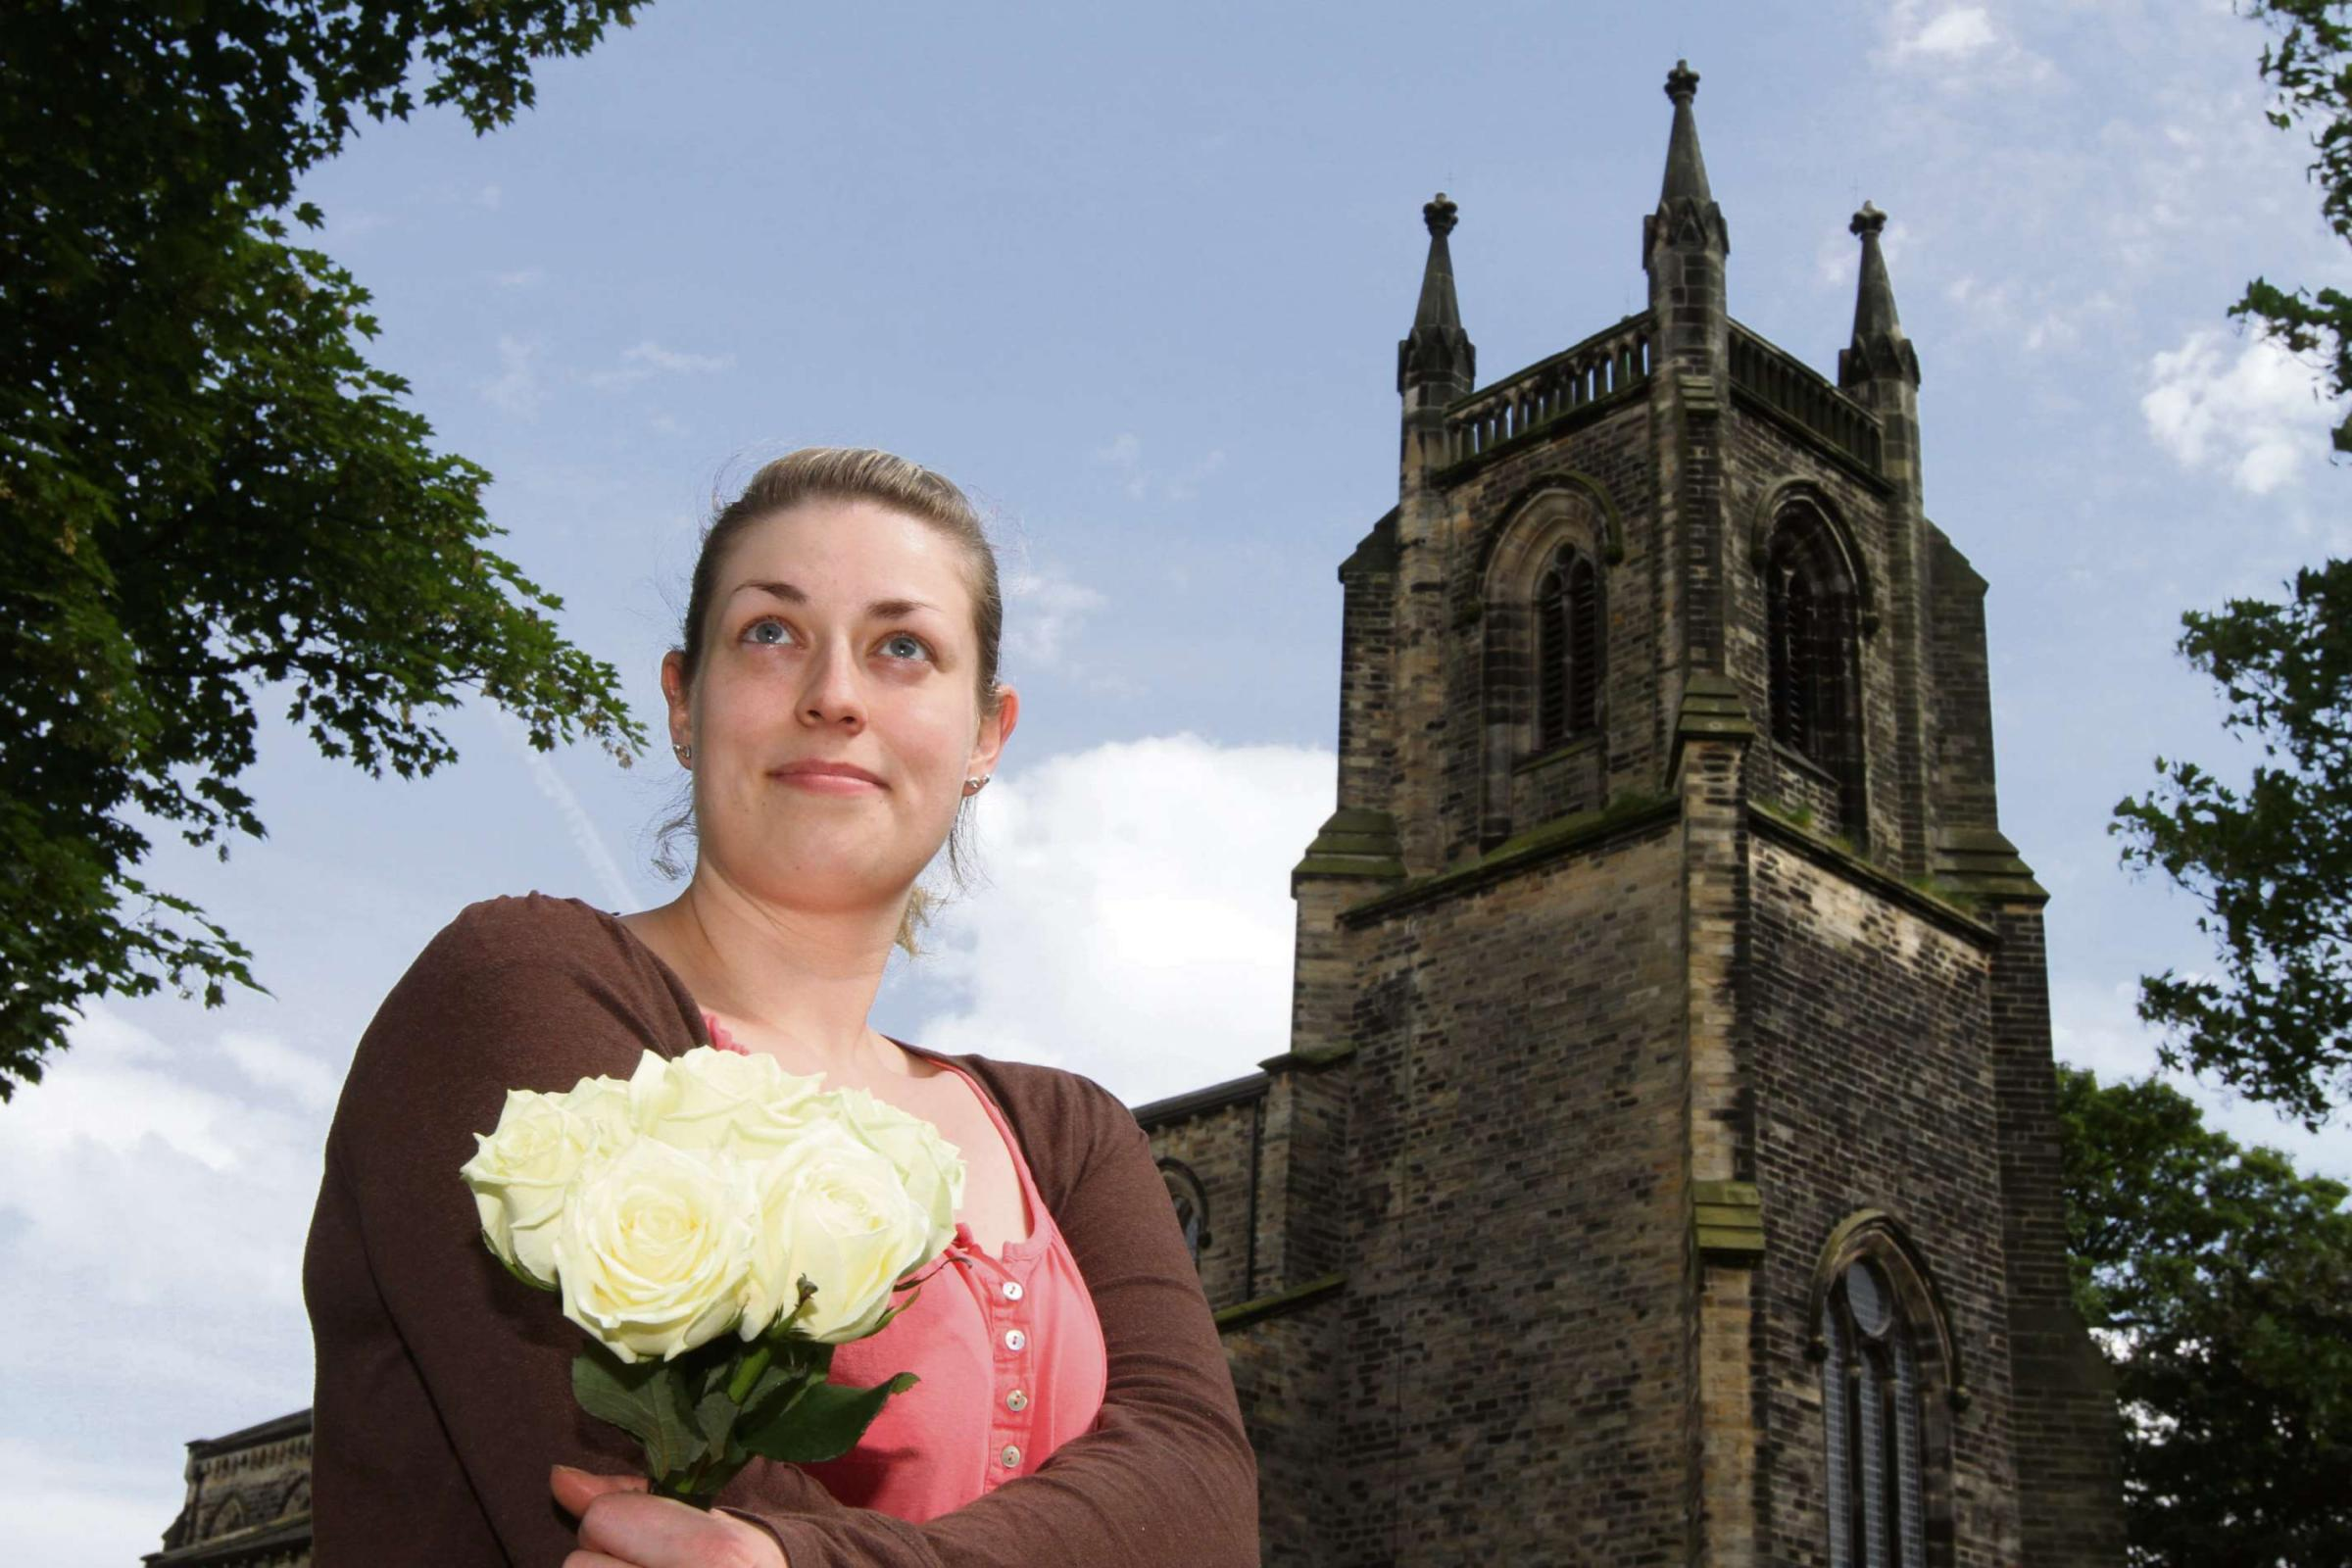 Skipton Tour day bride may have to walk to church